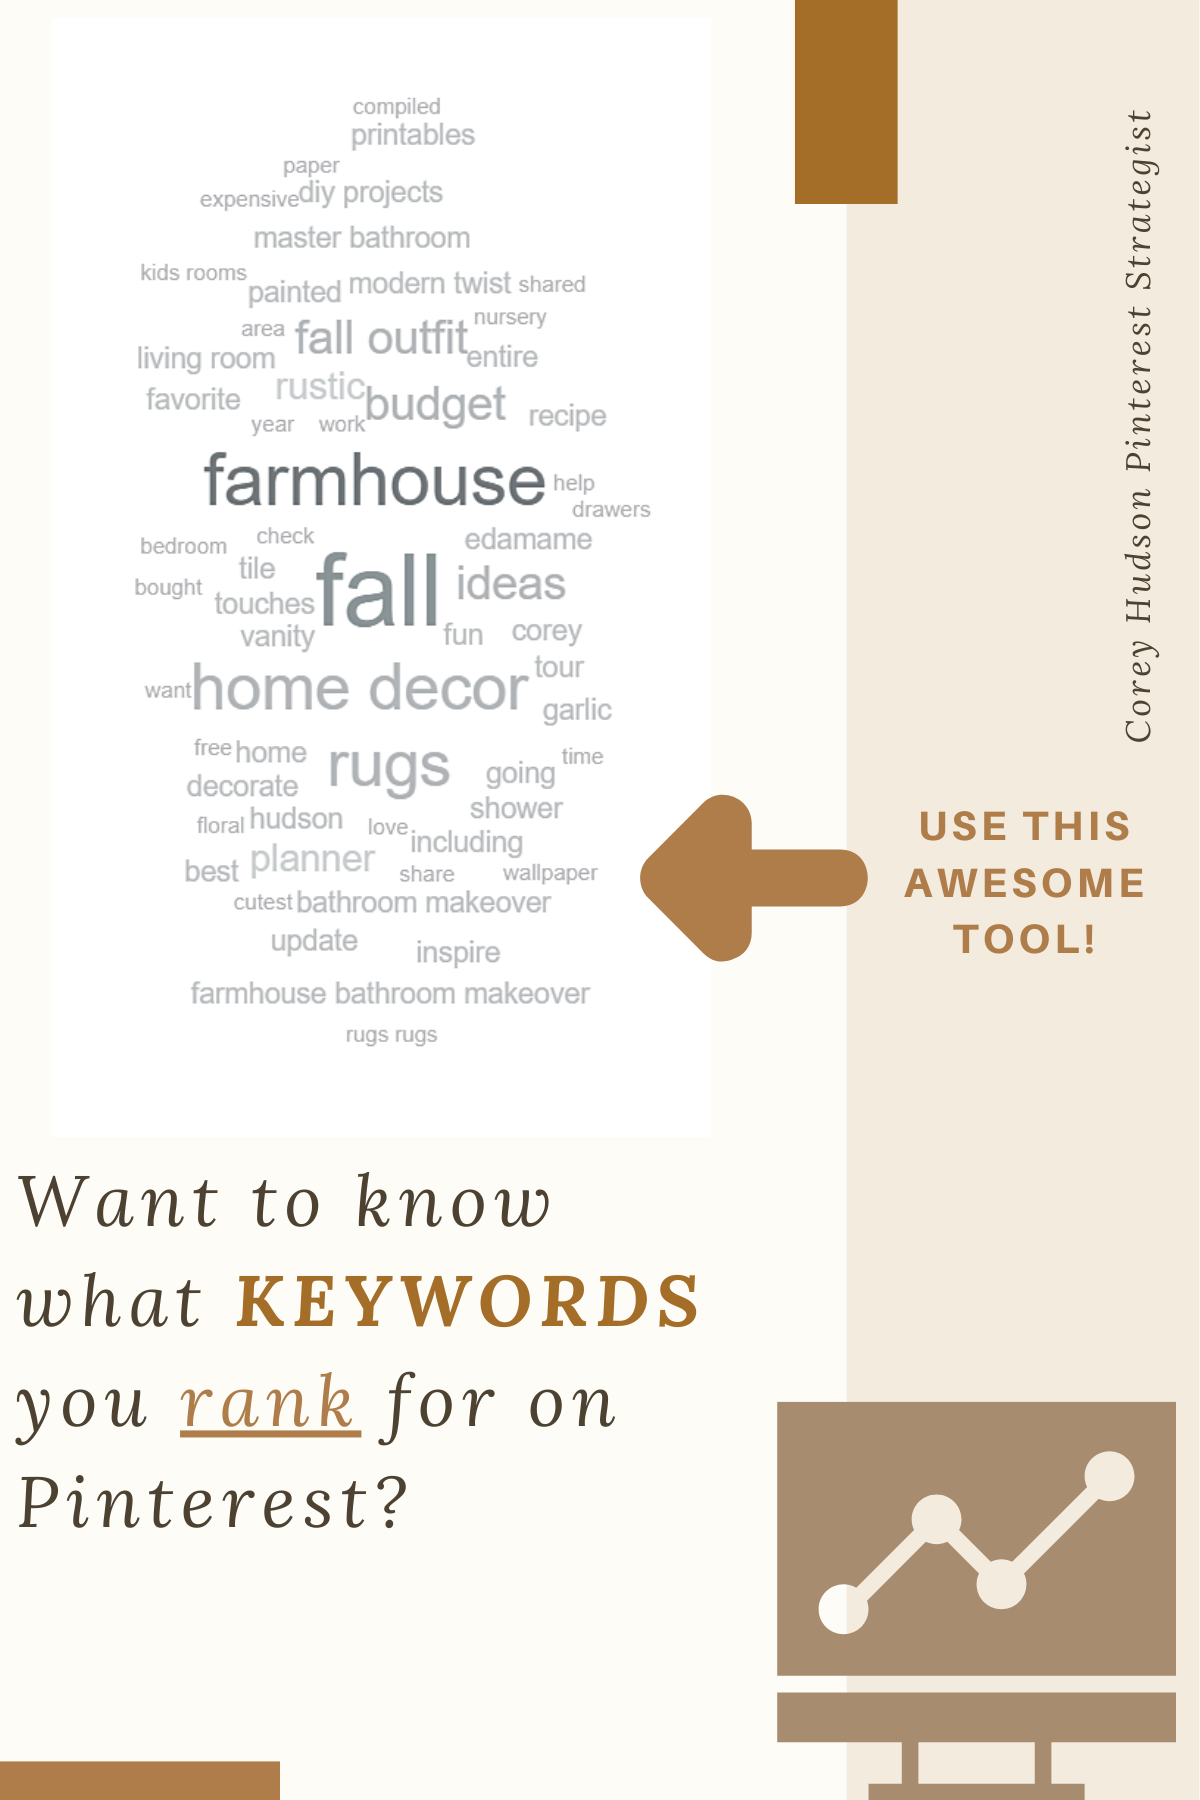 Pinterest Keyowrds 2 - How to Find the Keywords You Rank for on Pinterest